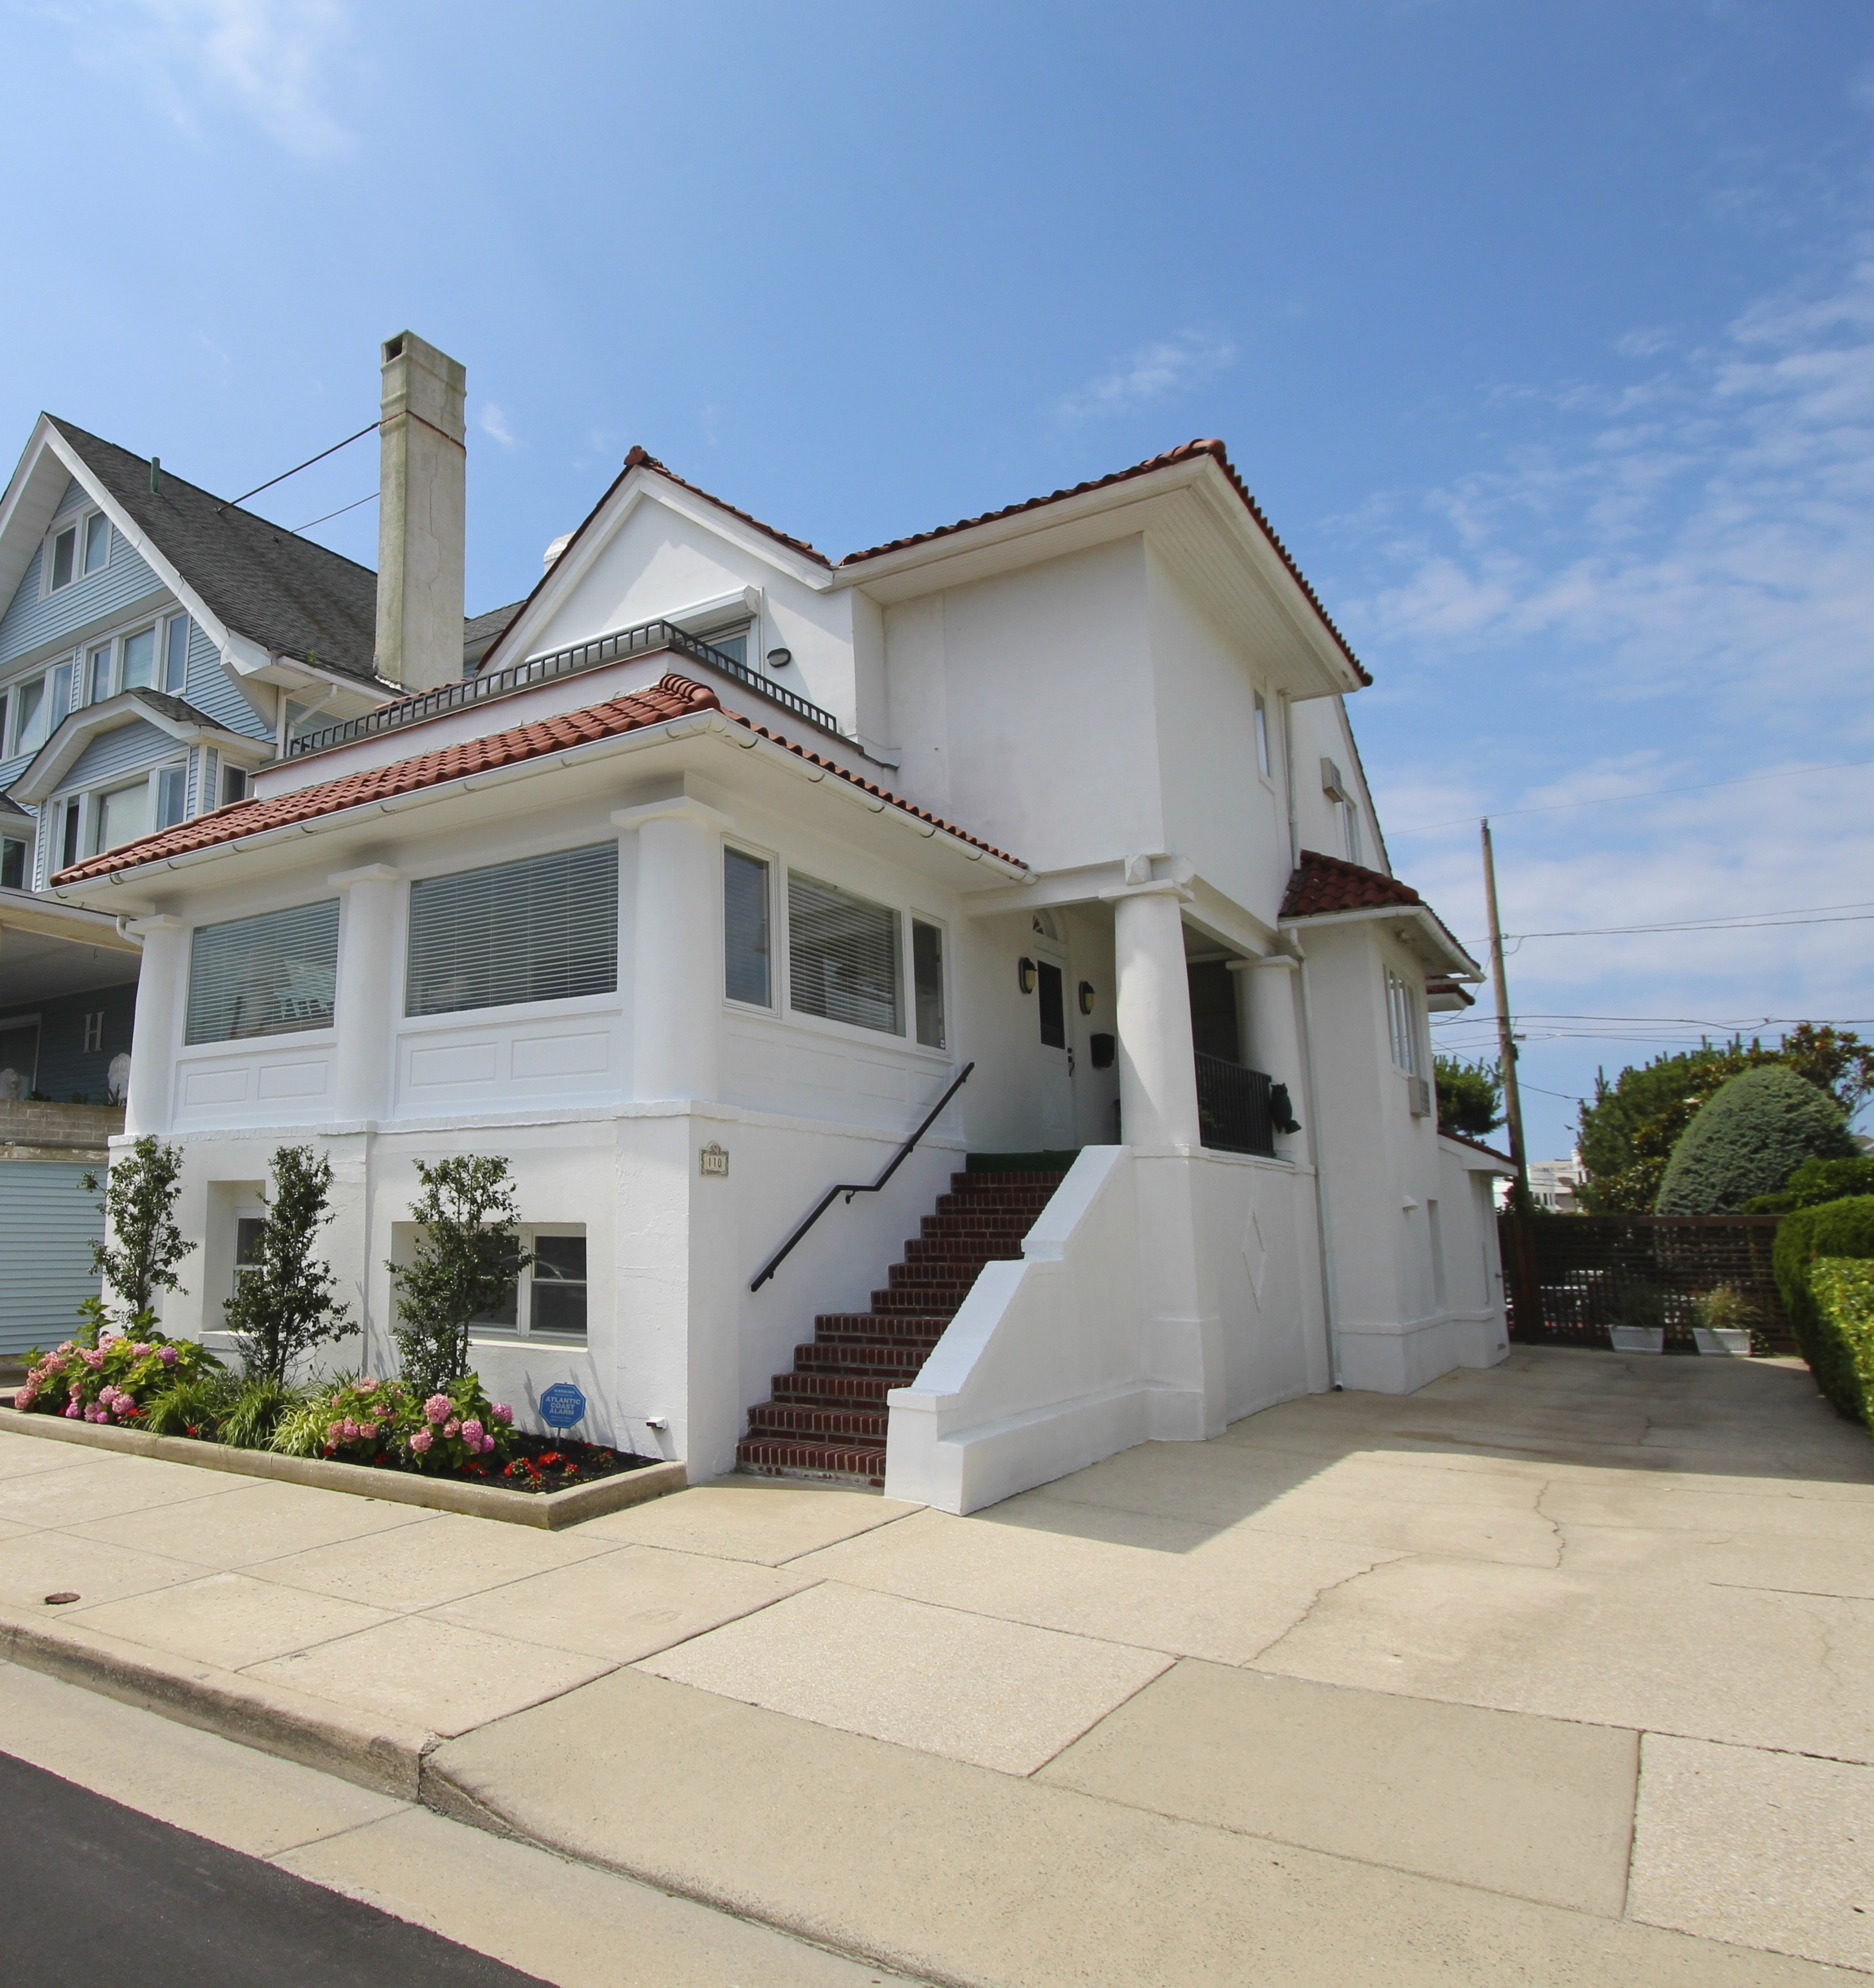 Single Family Home for Sale at 110 S Somerset Ventnor, 08406 United States